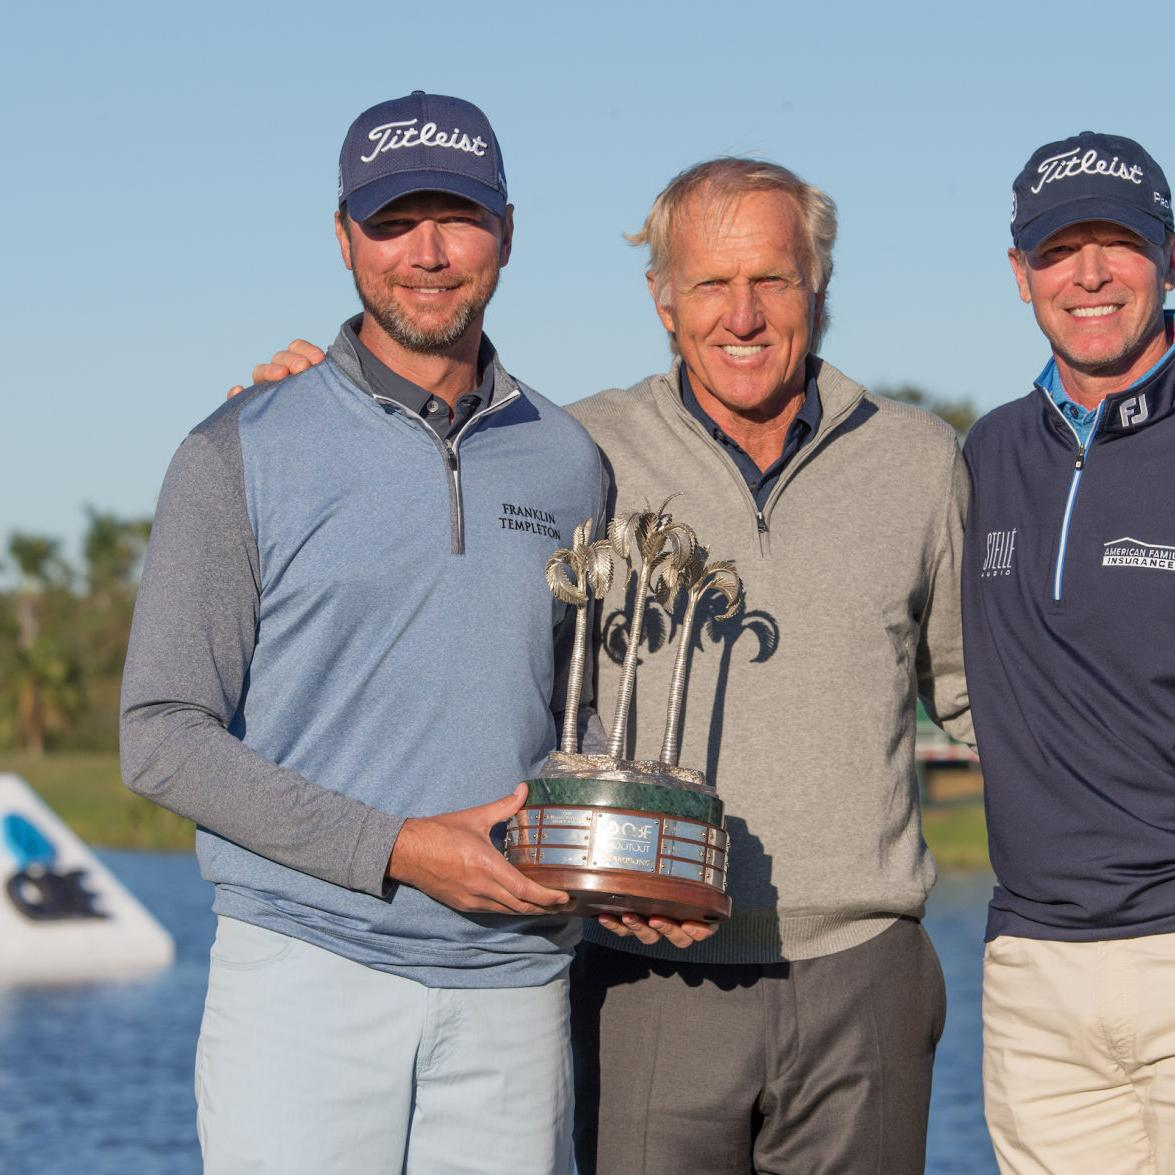 Drawing inspiration from his mentor and partner, Sean O'Hair teams with Madison's Steve Stricker to win QBE Shootout